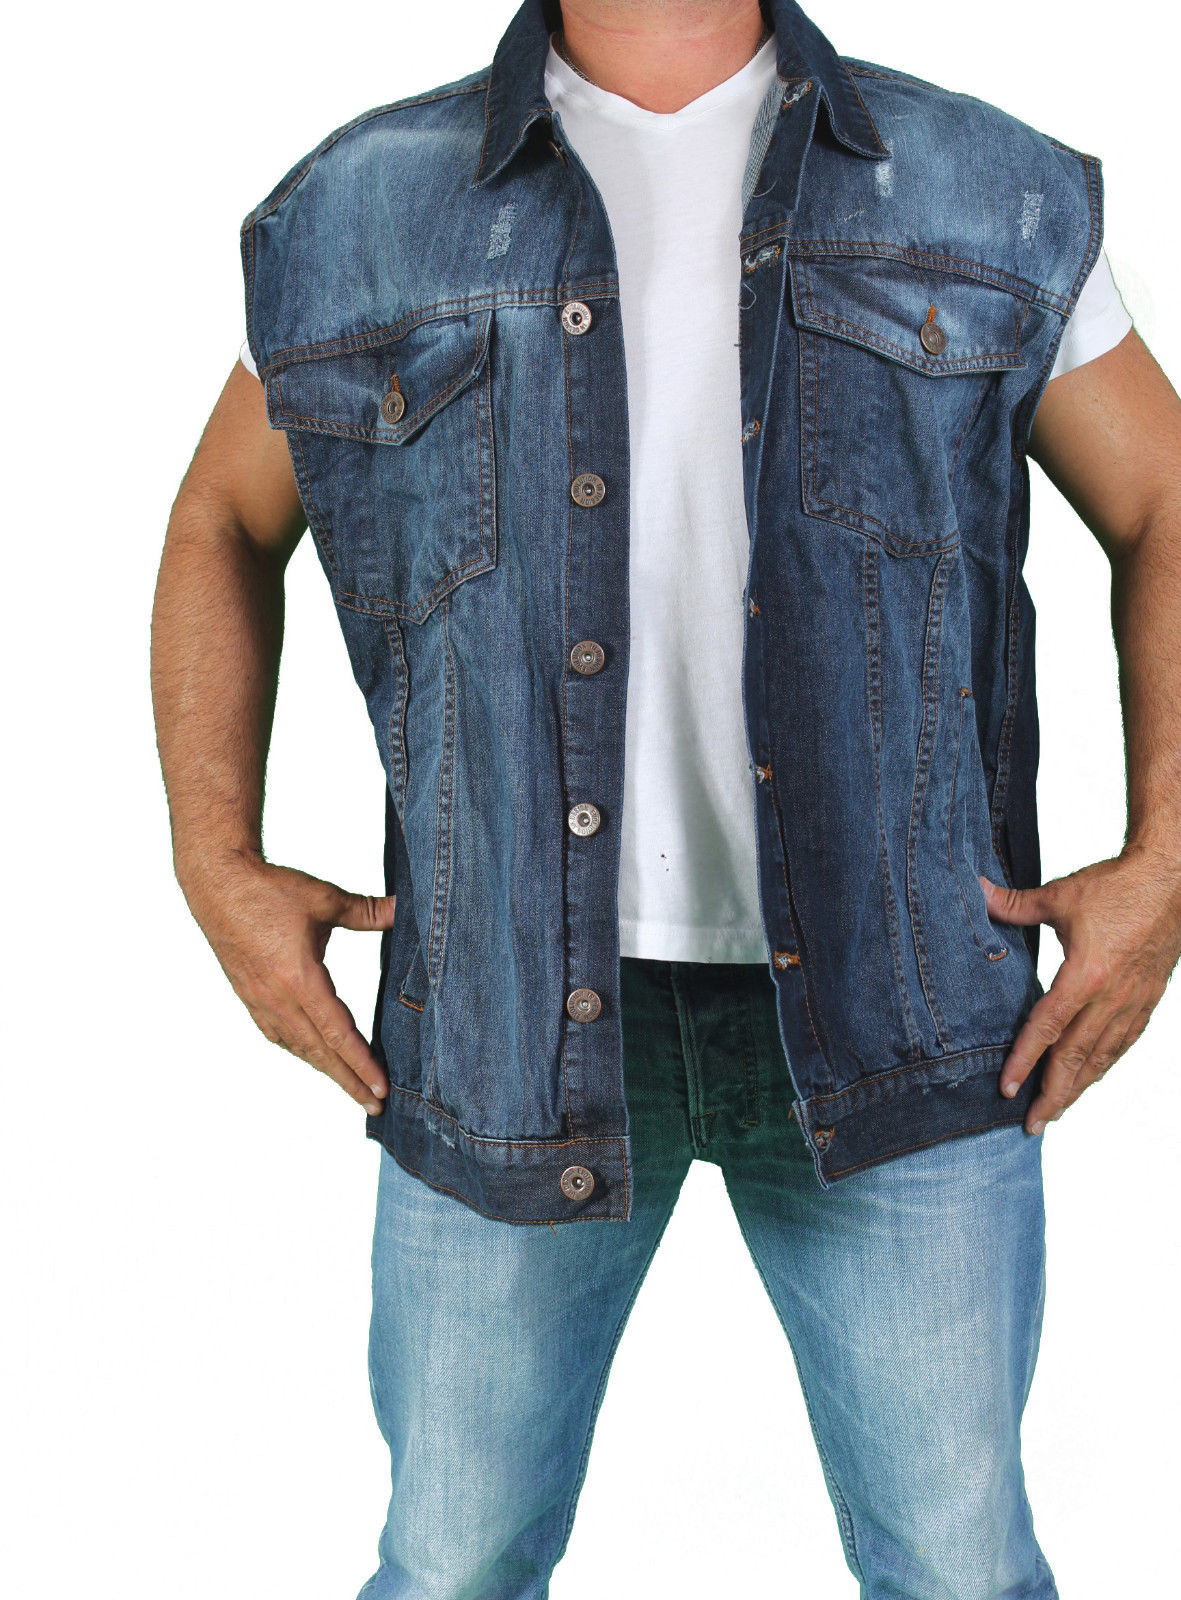 MEN'S BIKER BLUE SLEEVELESS DENIM MOTORCYCLE VEST BUTTON UP ...